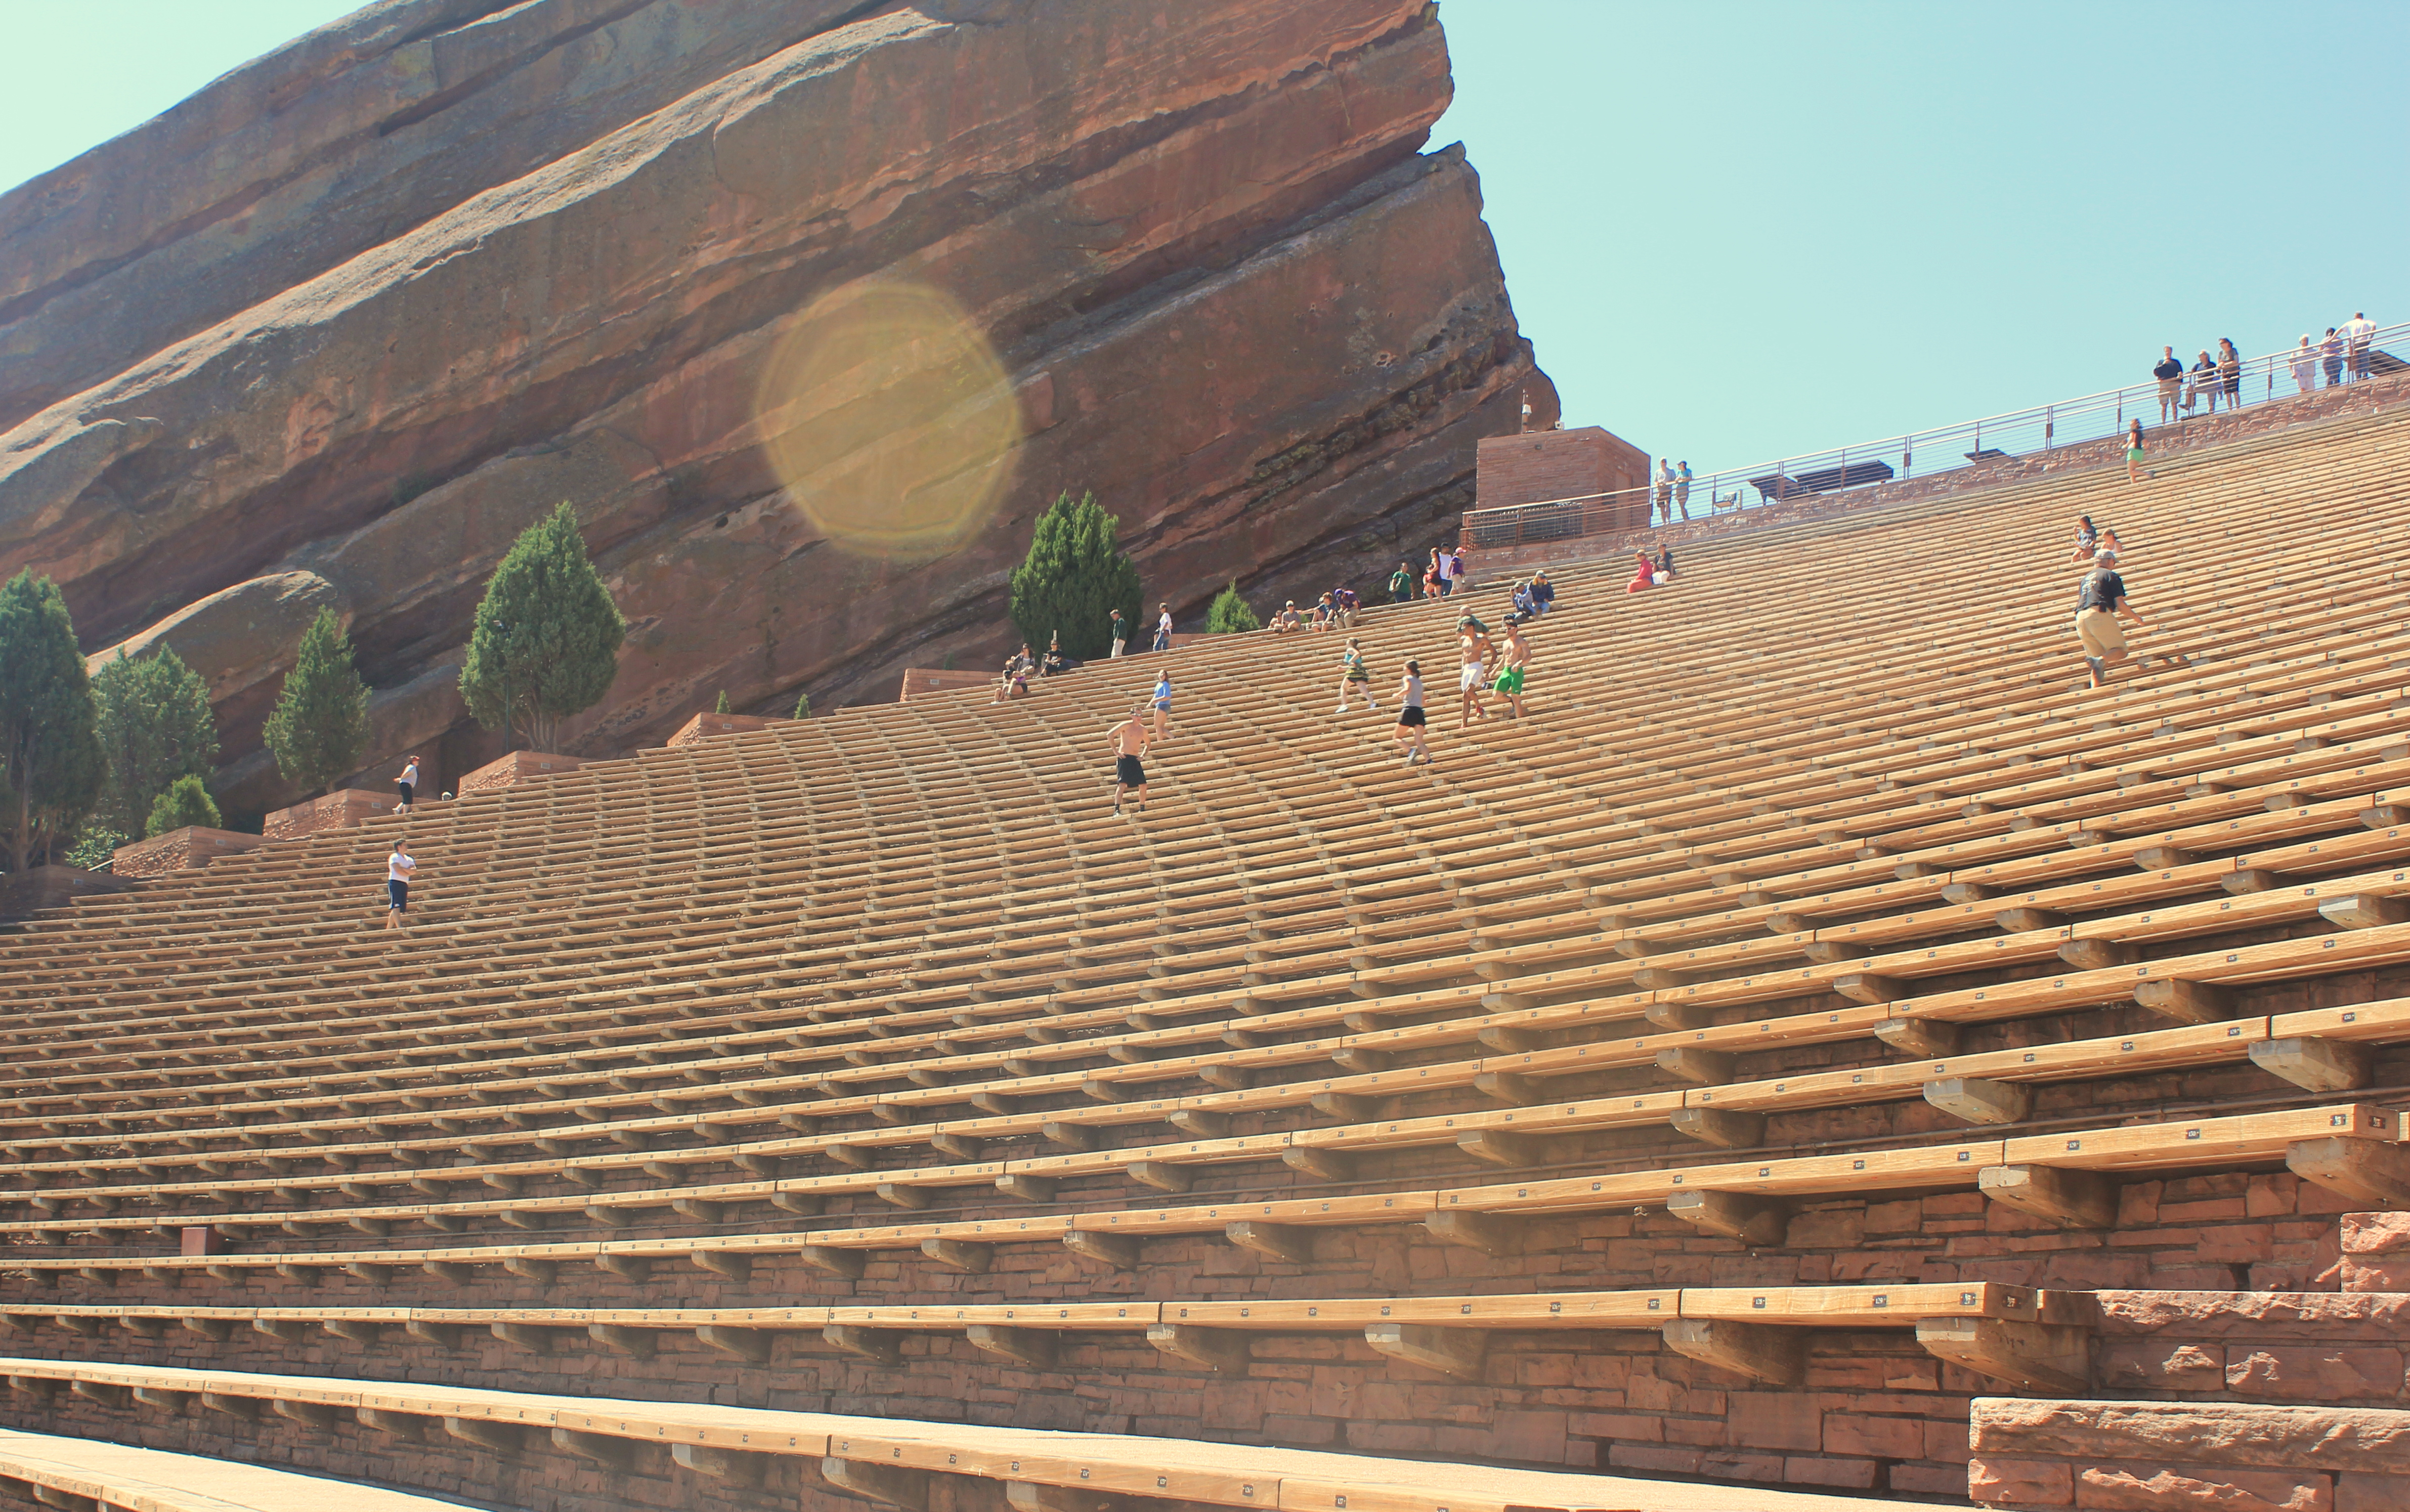 File:Red Rock Amphitheatre Seatings.jpg - Wikimedia Commons